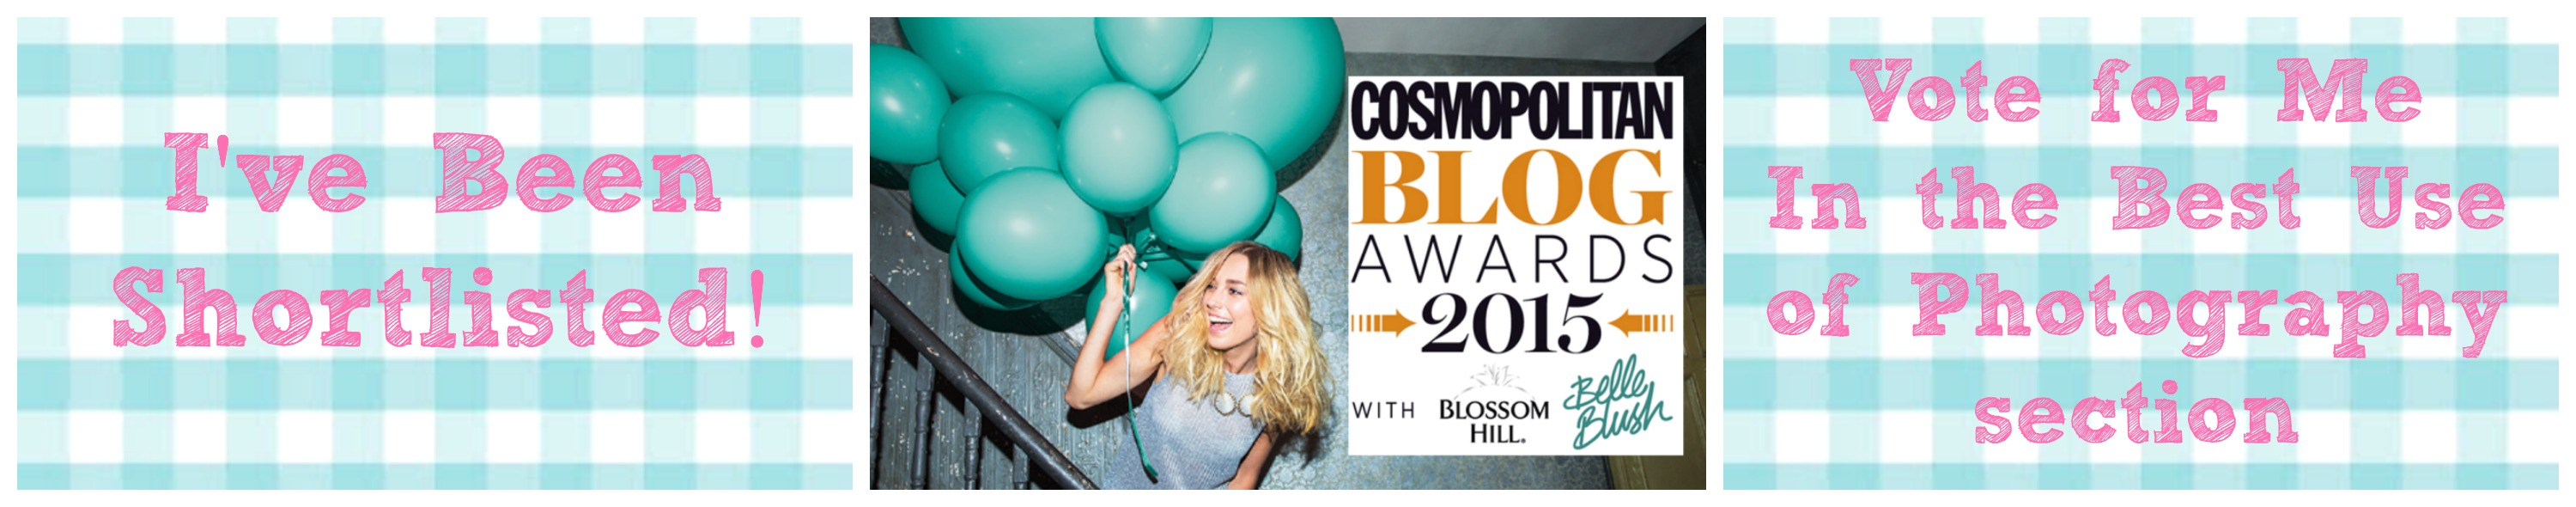 Cosmo Blog Awards